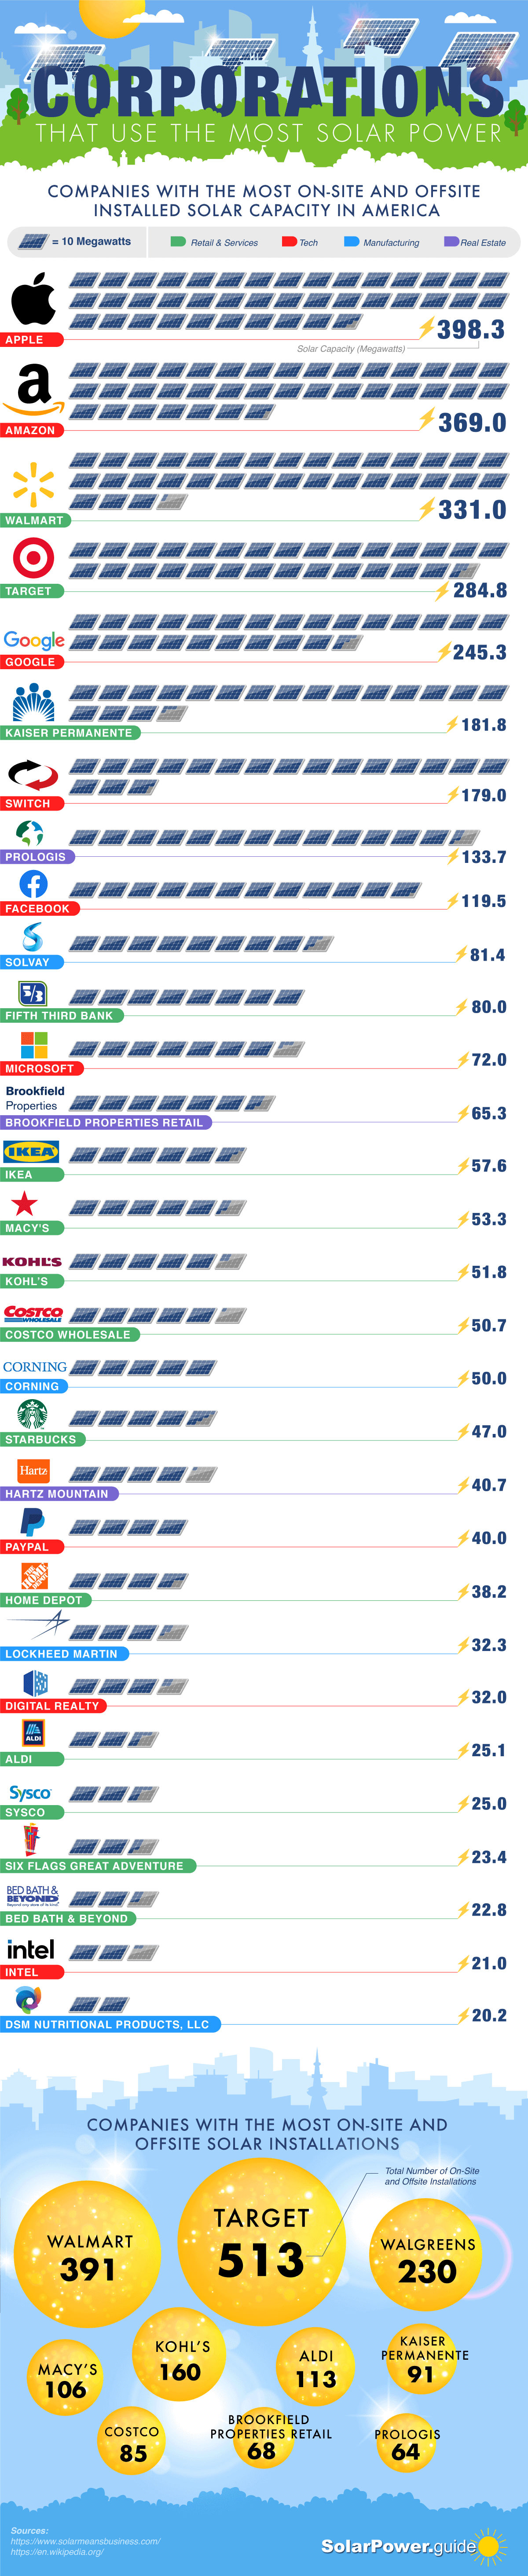 Which Corporations Use the Most Solar Power